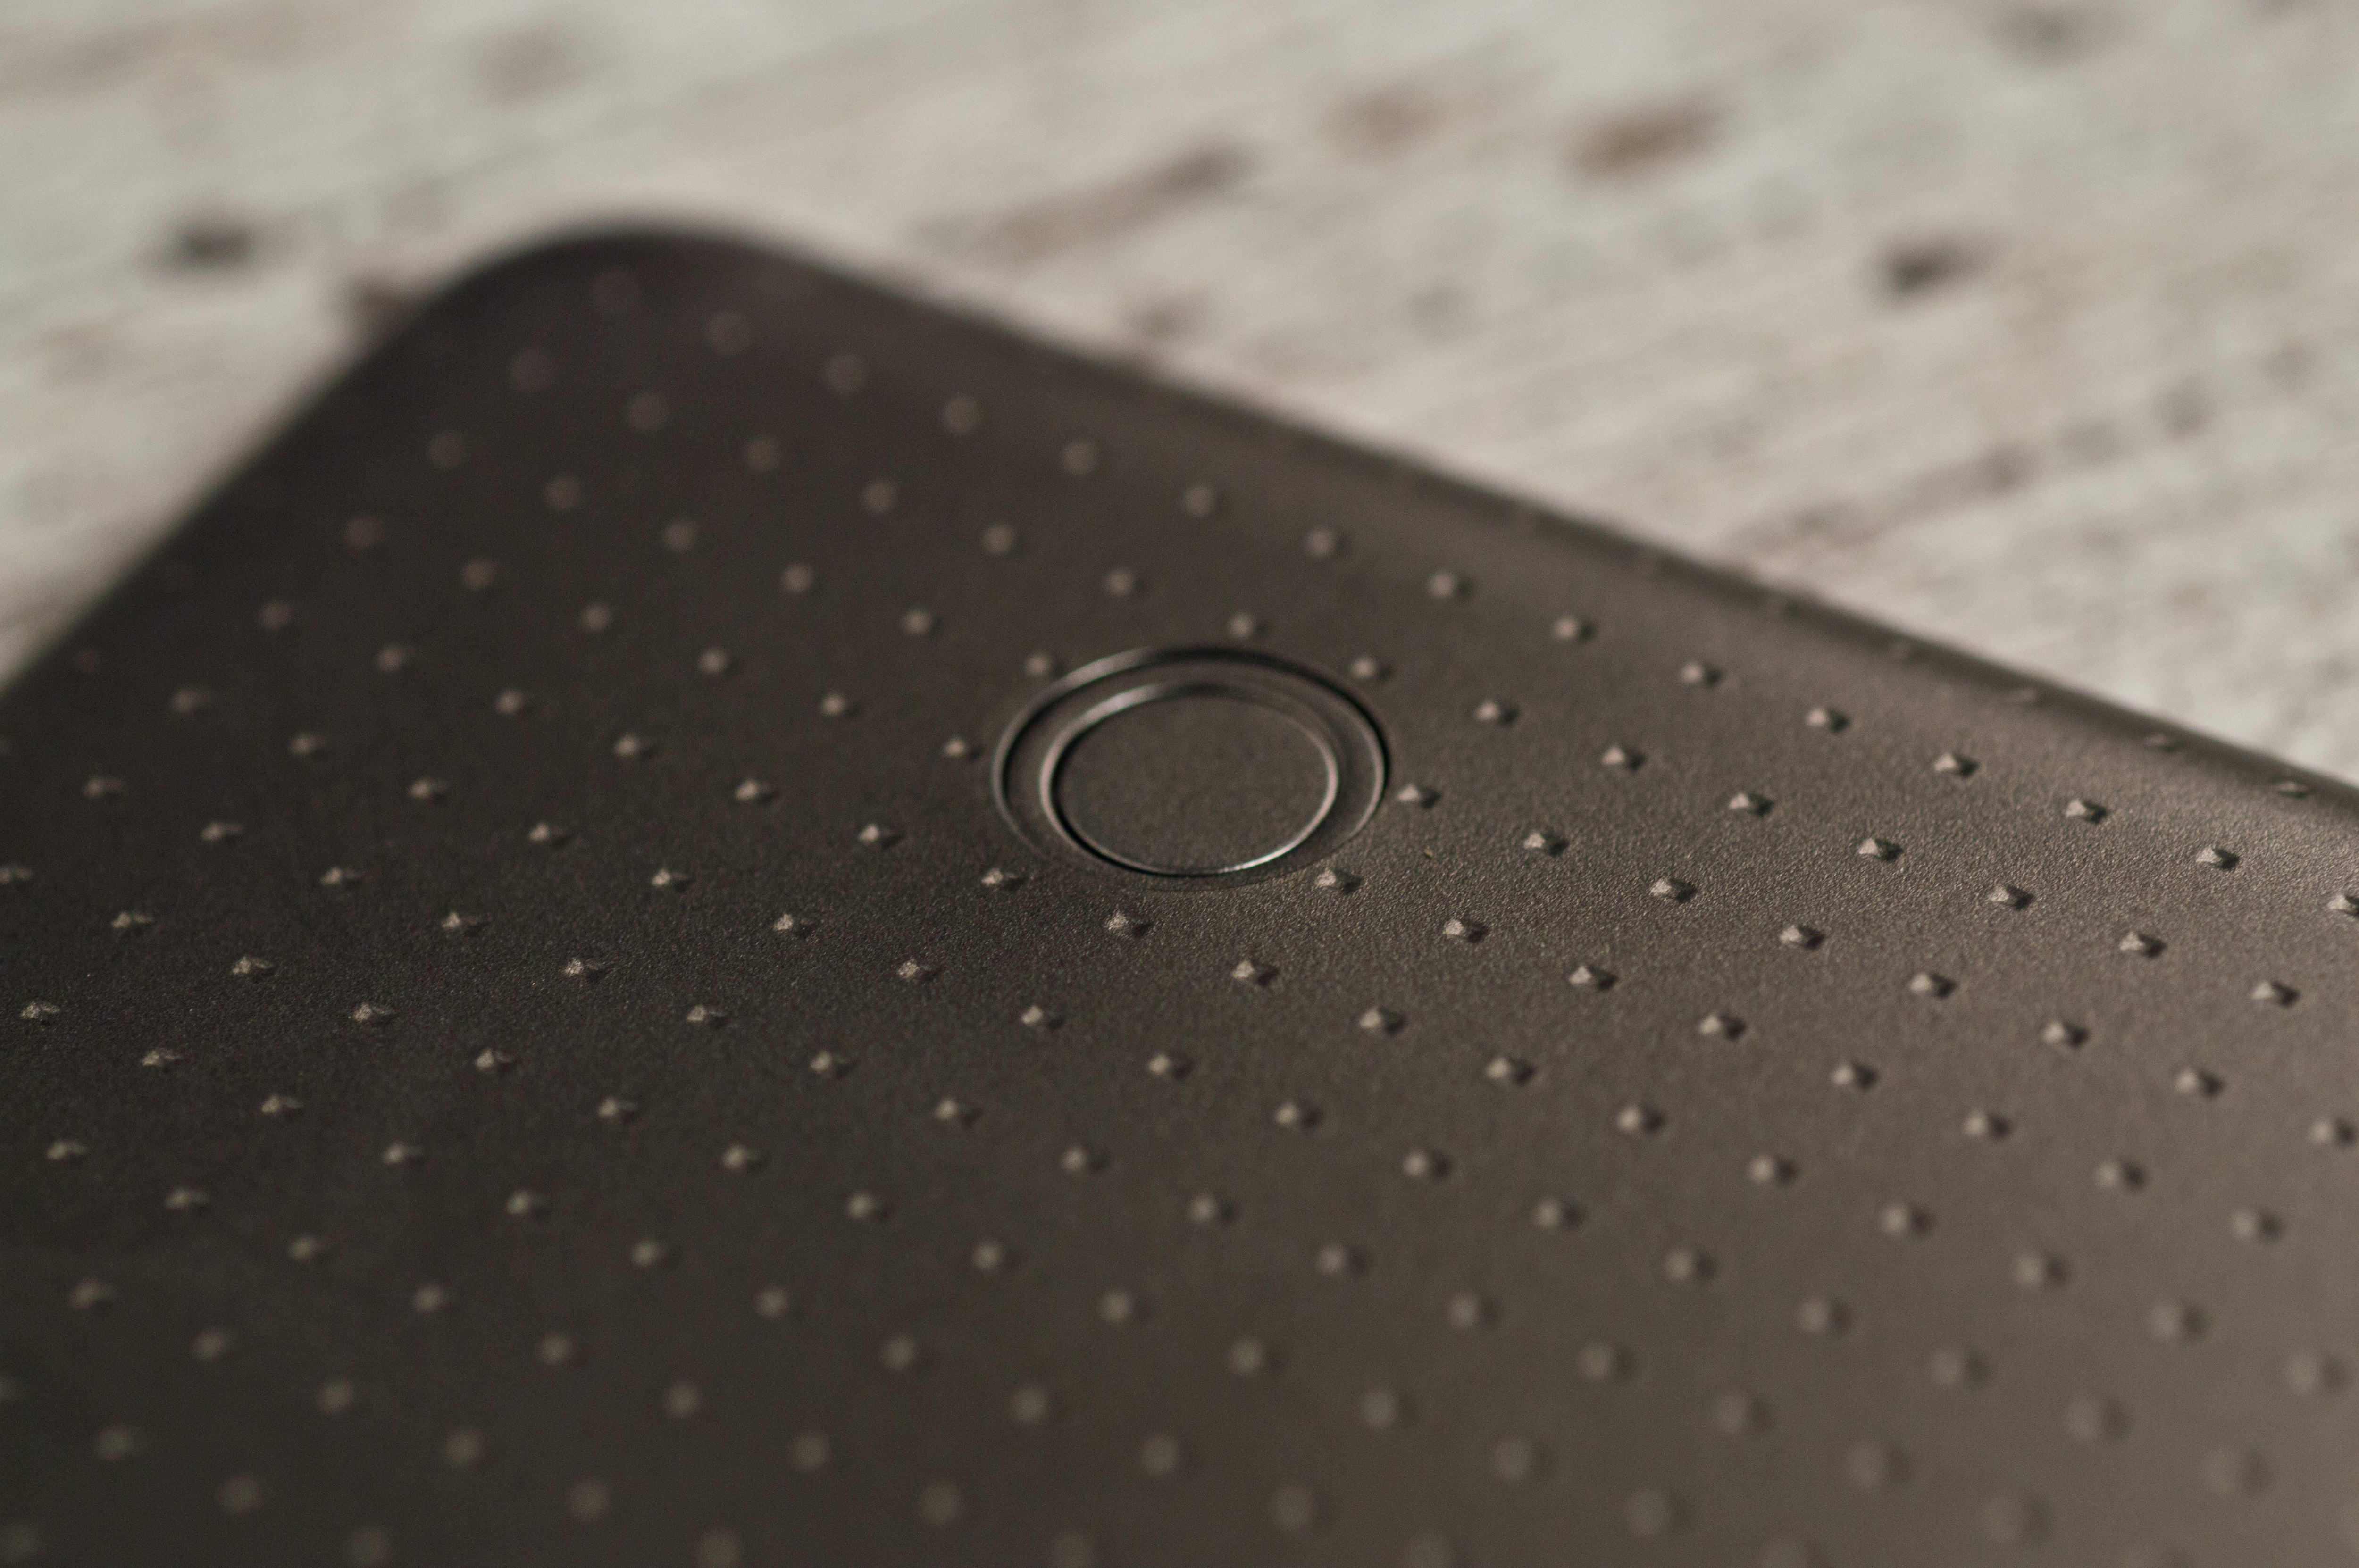 A photograph of the Samsung Galaxy Tab S 8.4's case lock.